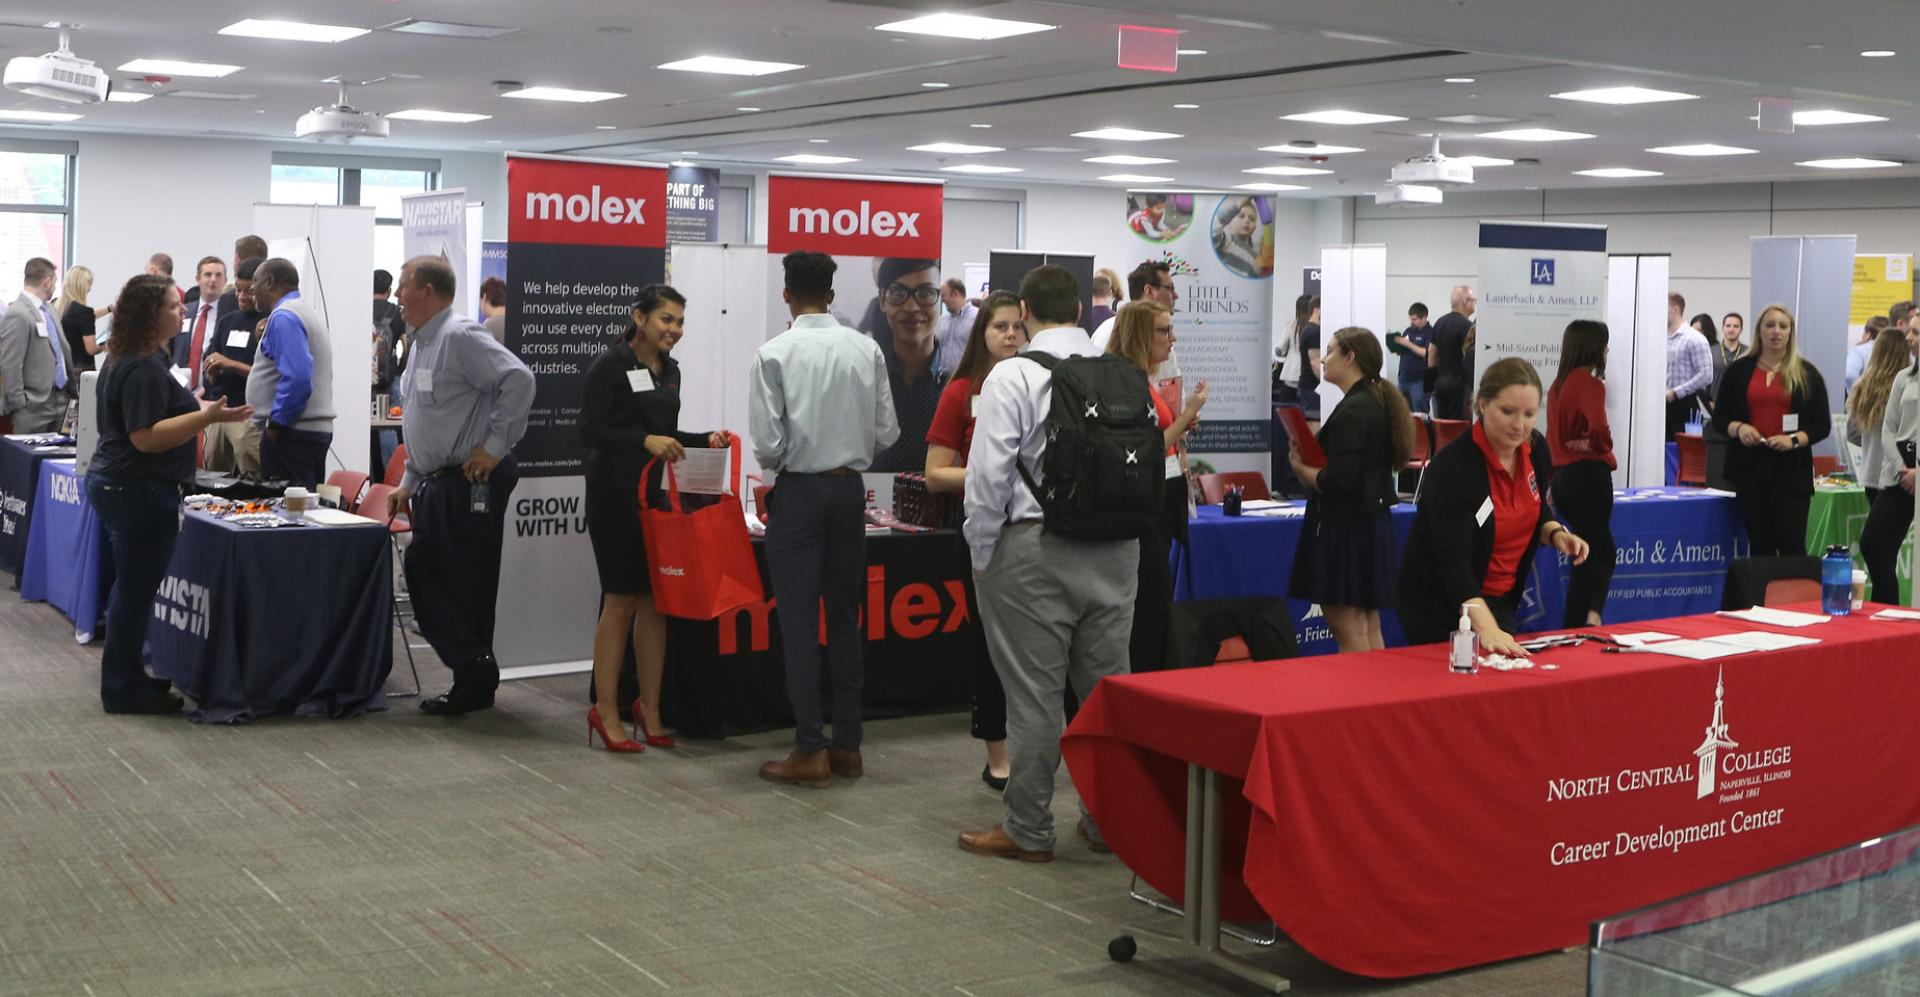 Students line up to meet companies at an event, looking for post-college careers.